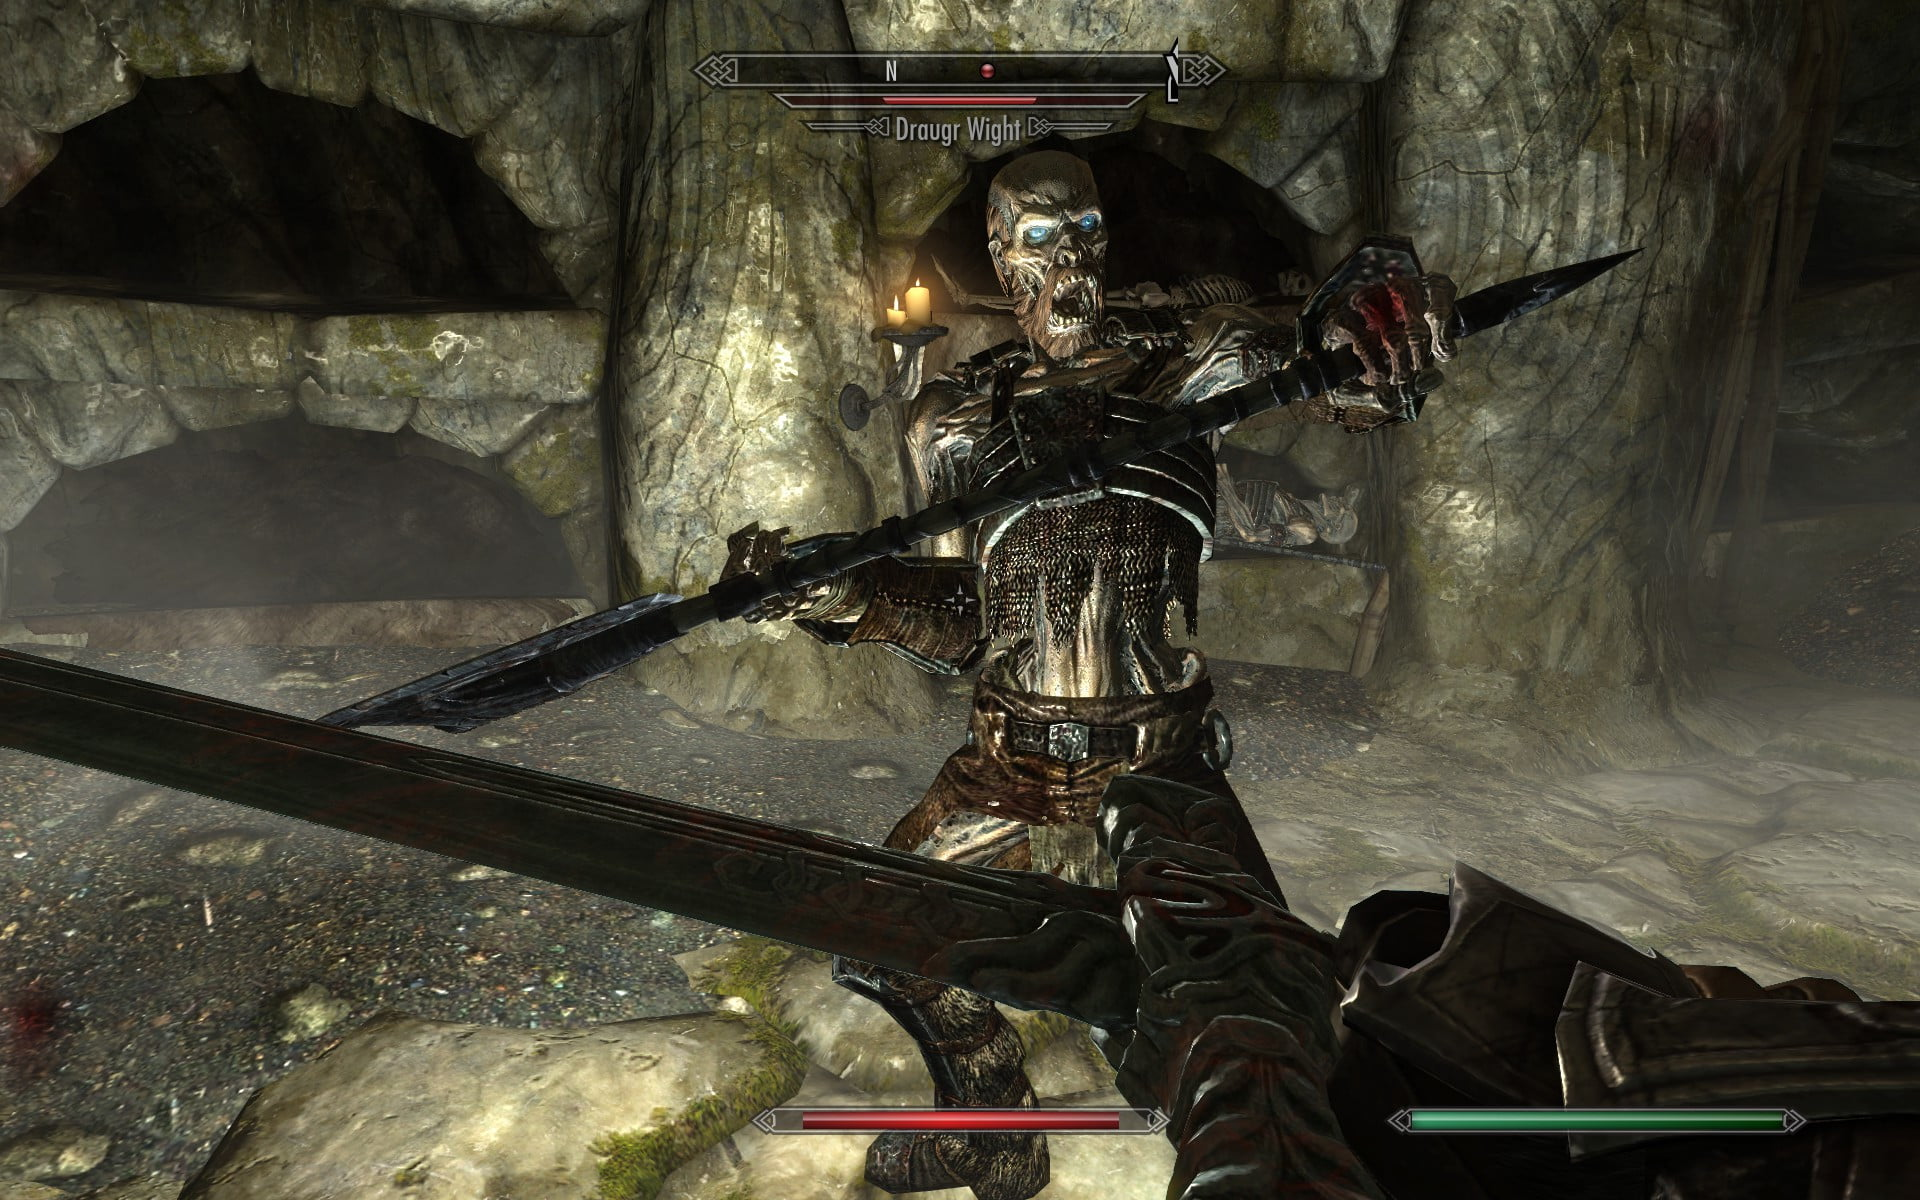 Five Things We Want From The Next Elder Scrolls Game